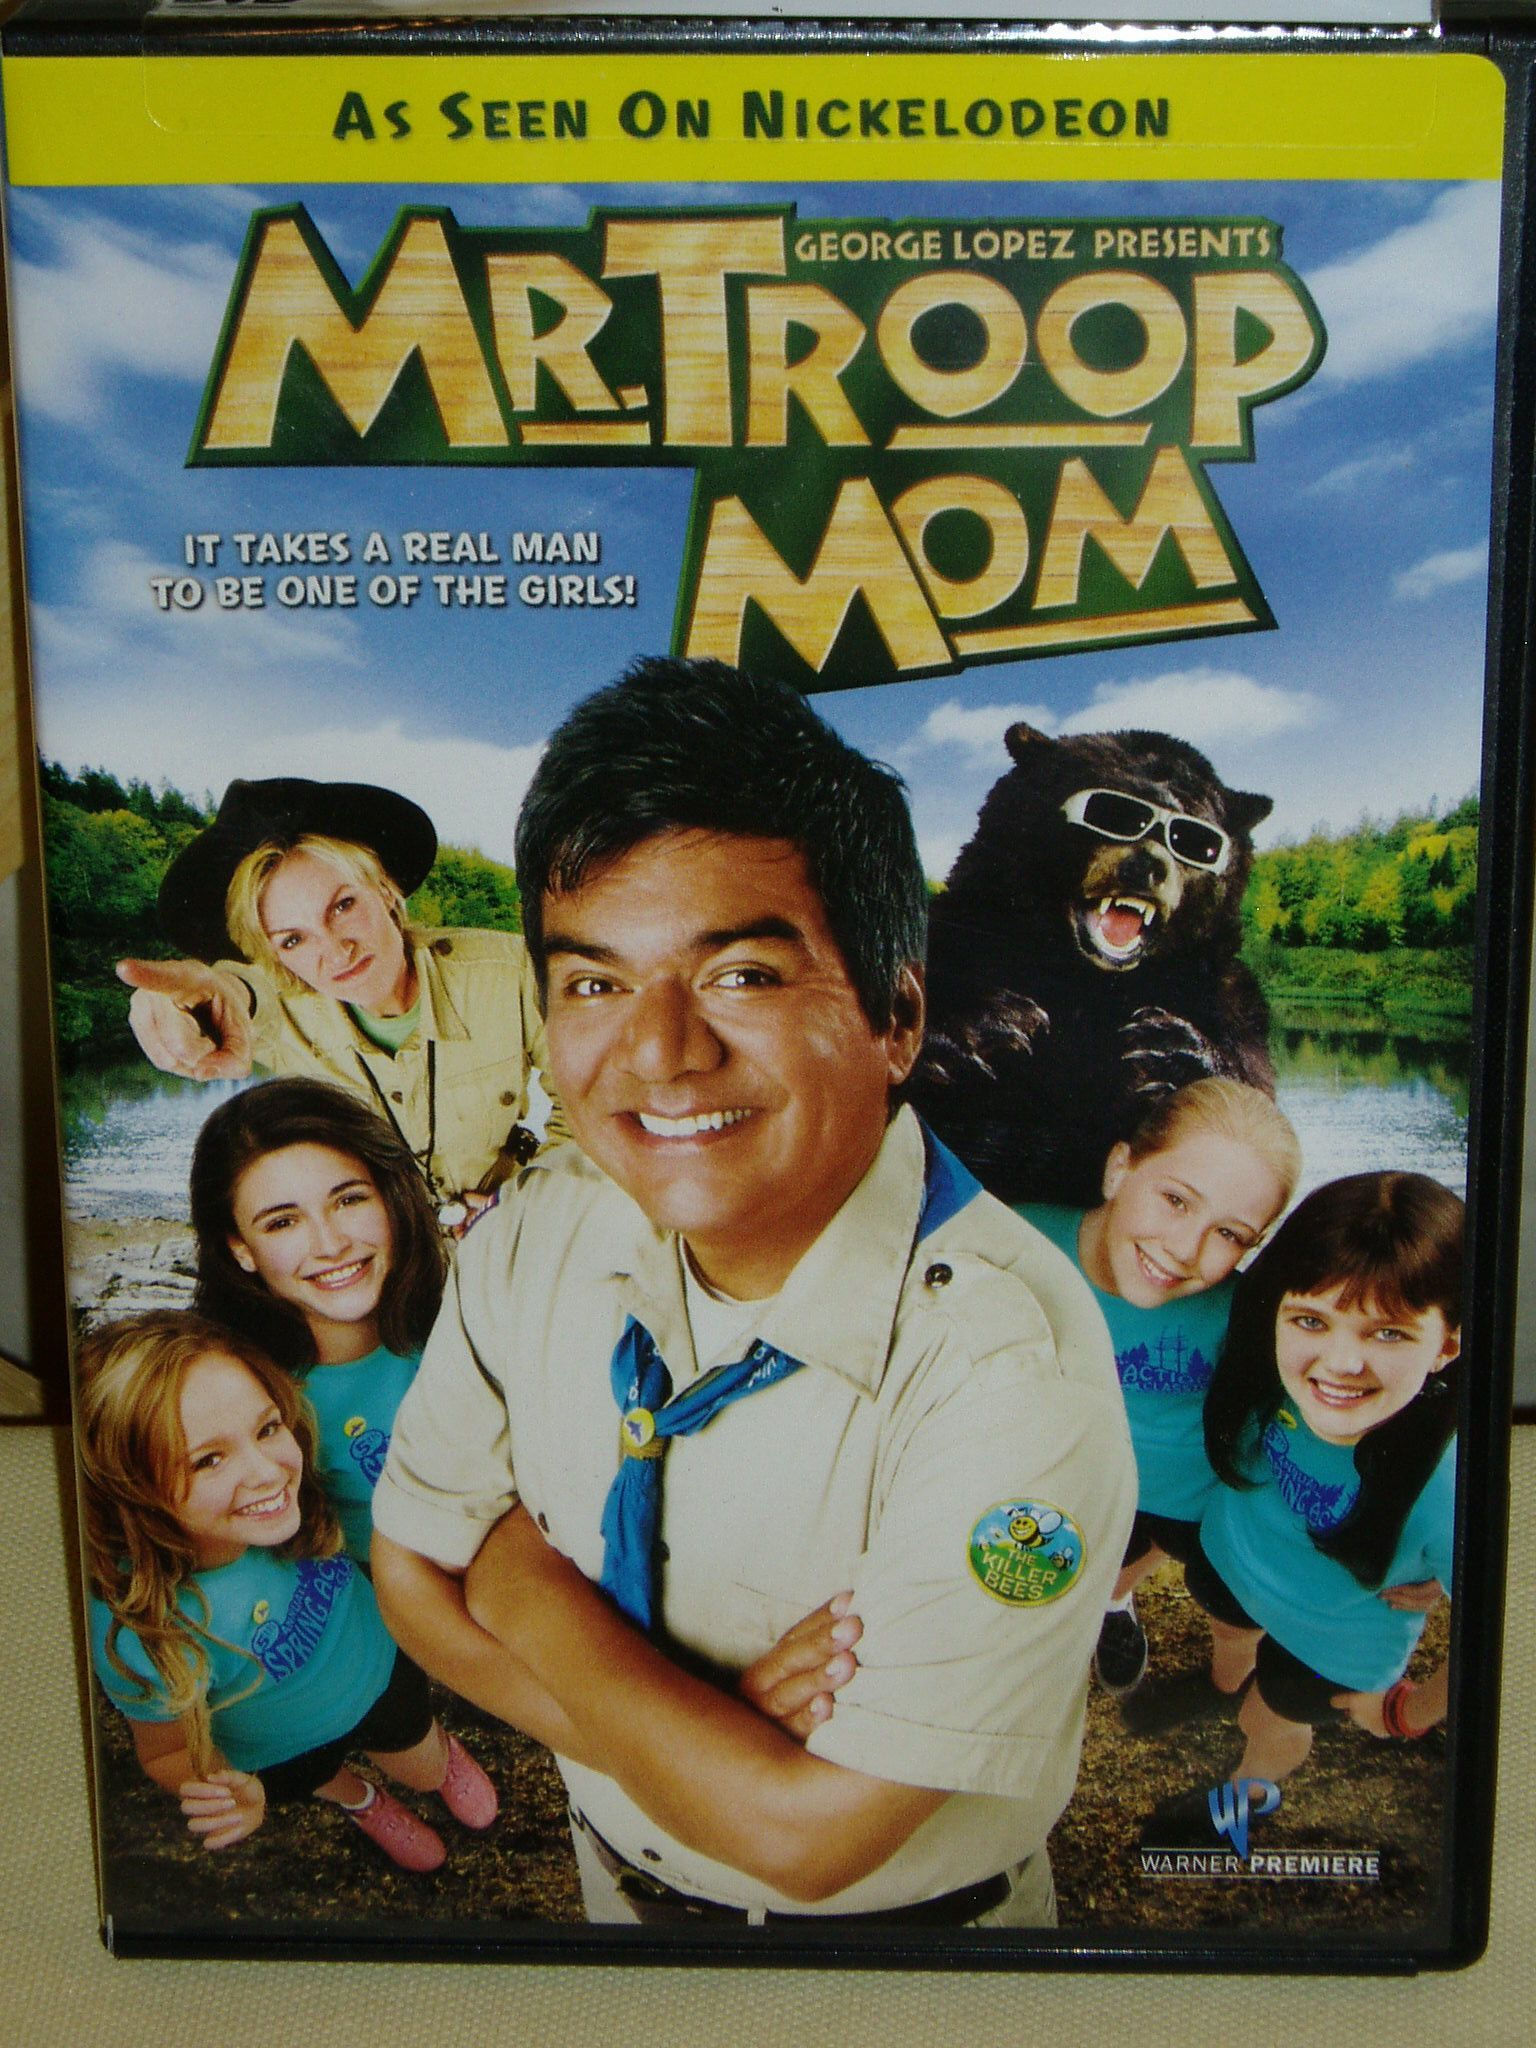 Mr  Troop Mom - DVD | Movies/shows | Family movies, Jane